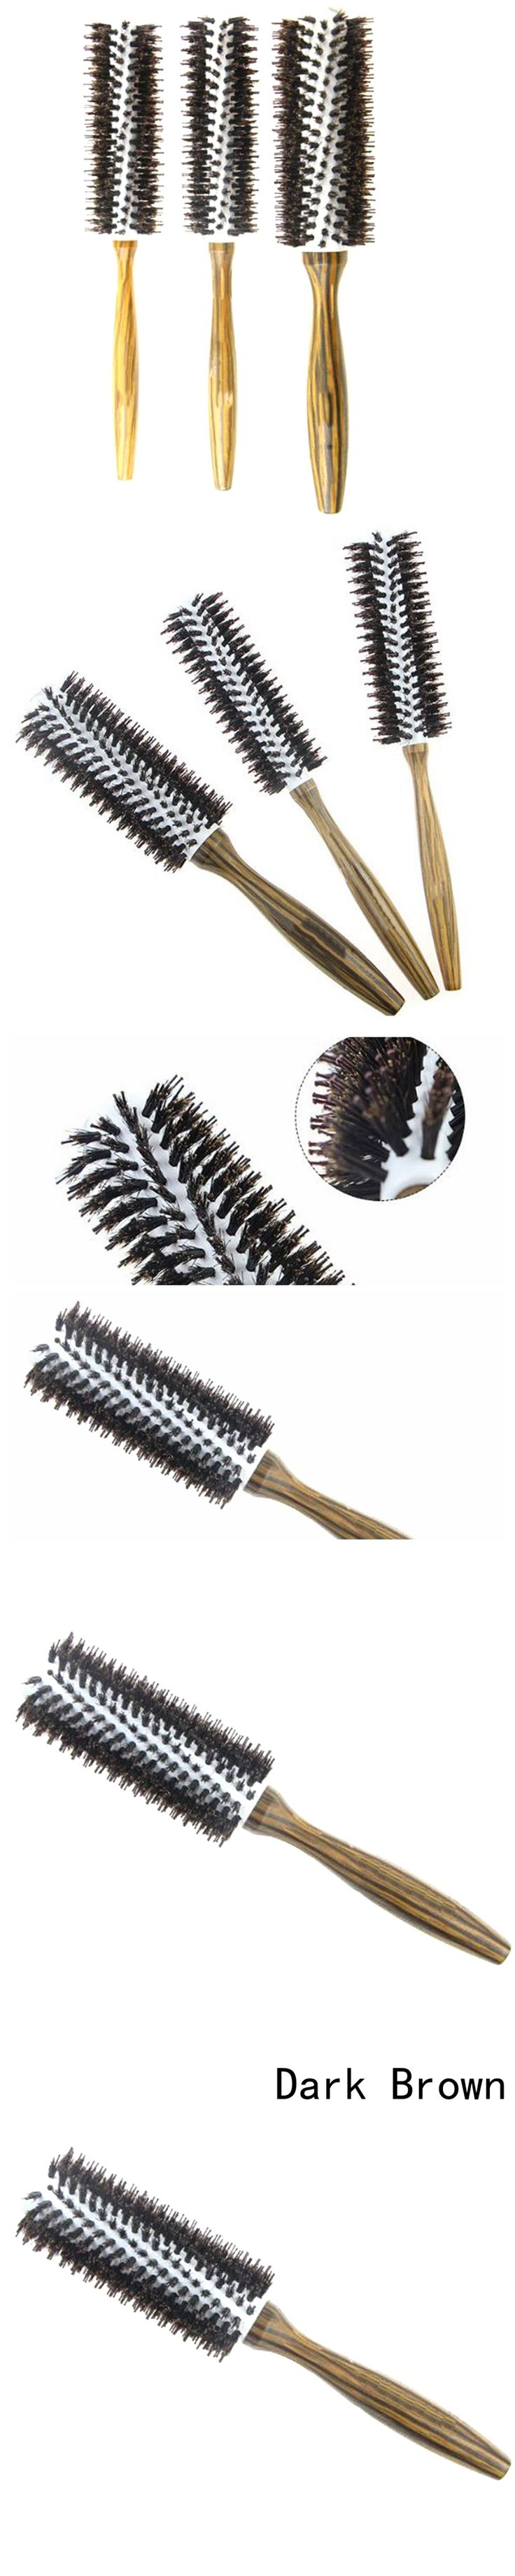 New 2018 Roll Round Hair Brush Comb Brush Hair Care Tool Wood Handle Natural Bristle Curly Hair Brush Fluffy Comb Hairdressing